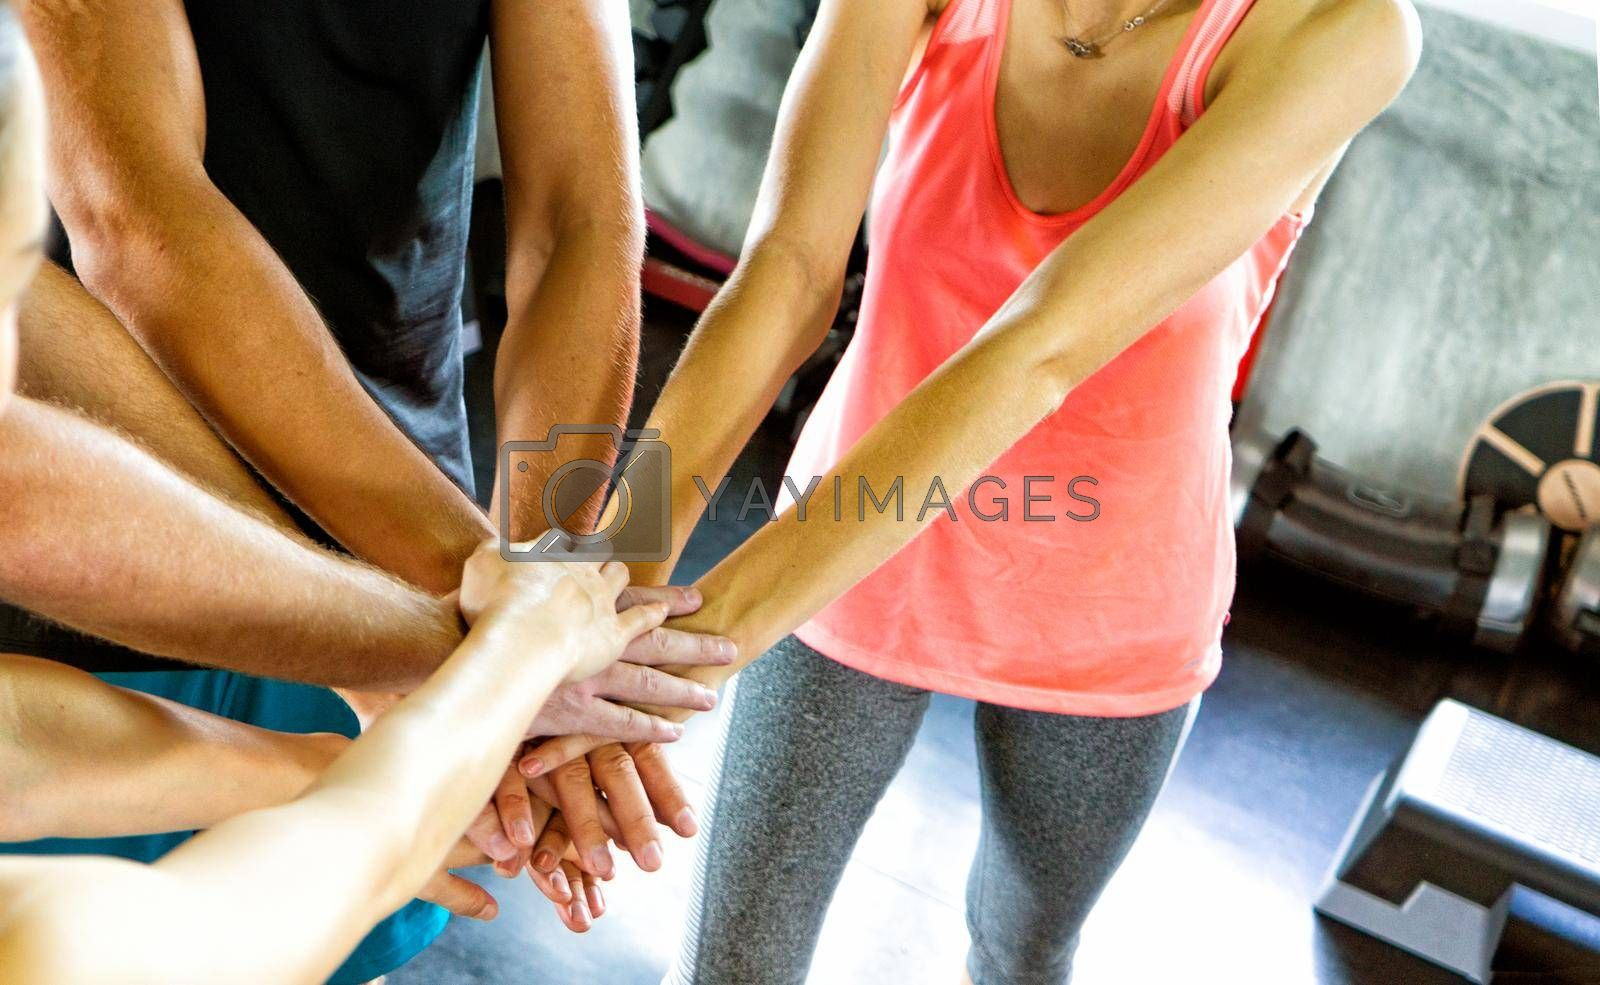 Athletic young people in sportswear doing fitness stretching exercises at fitness gym. Sport and recreation concept.